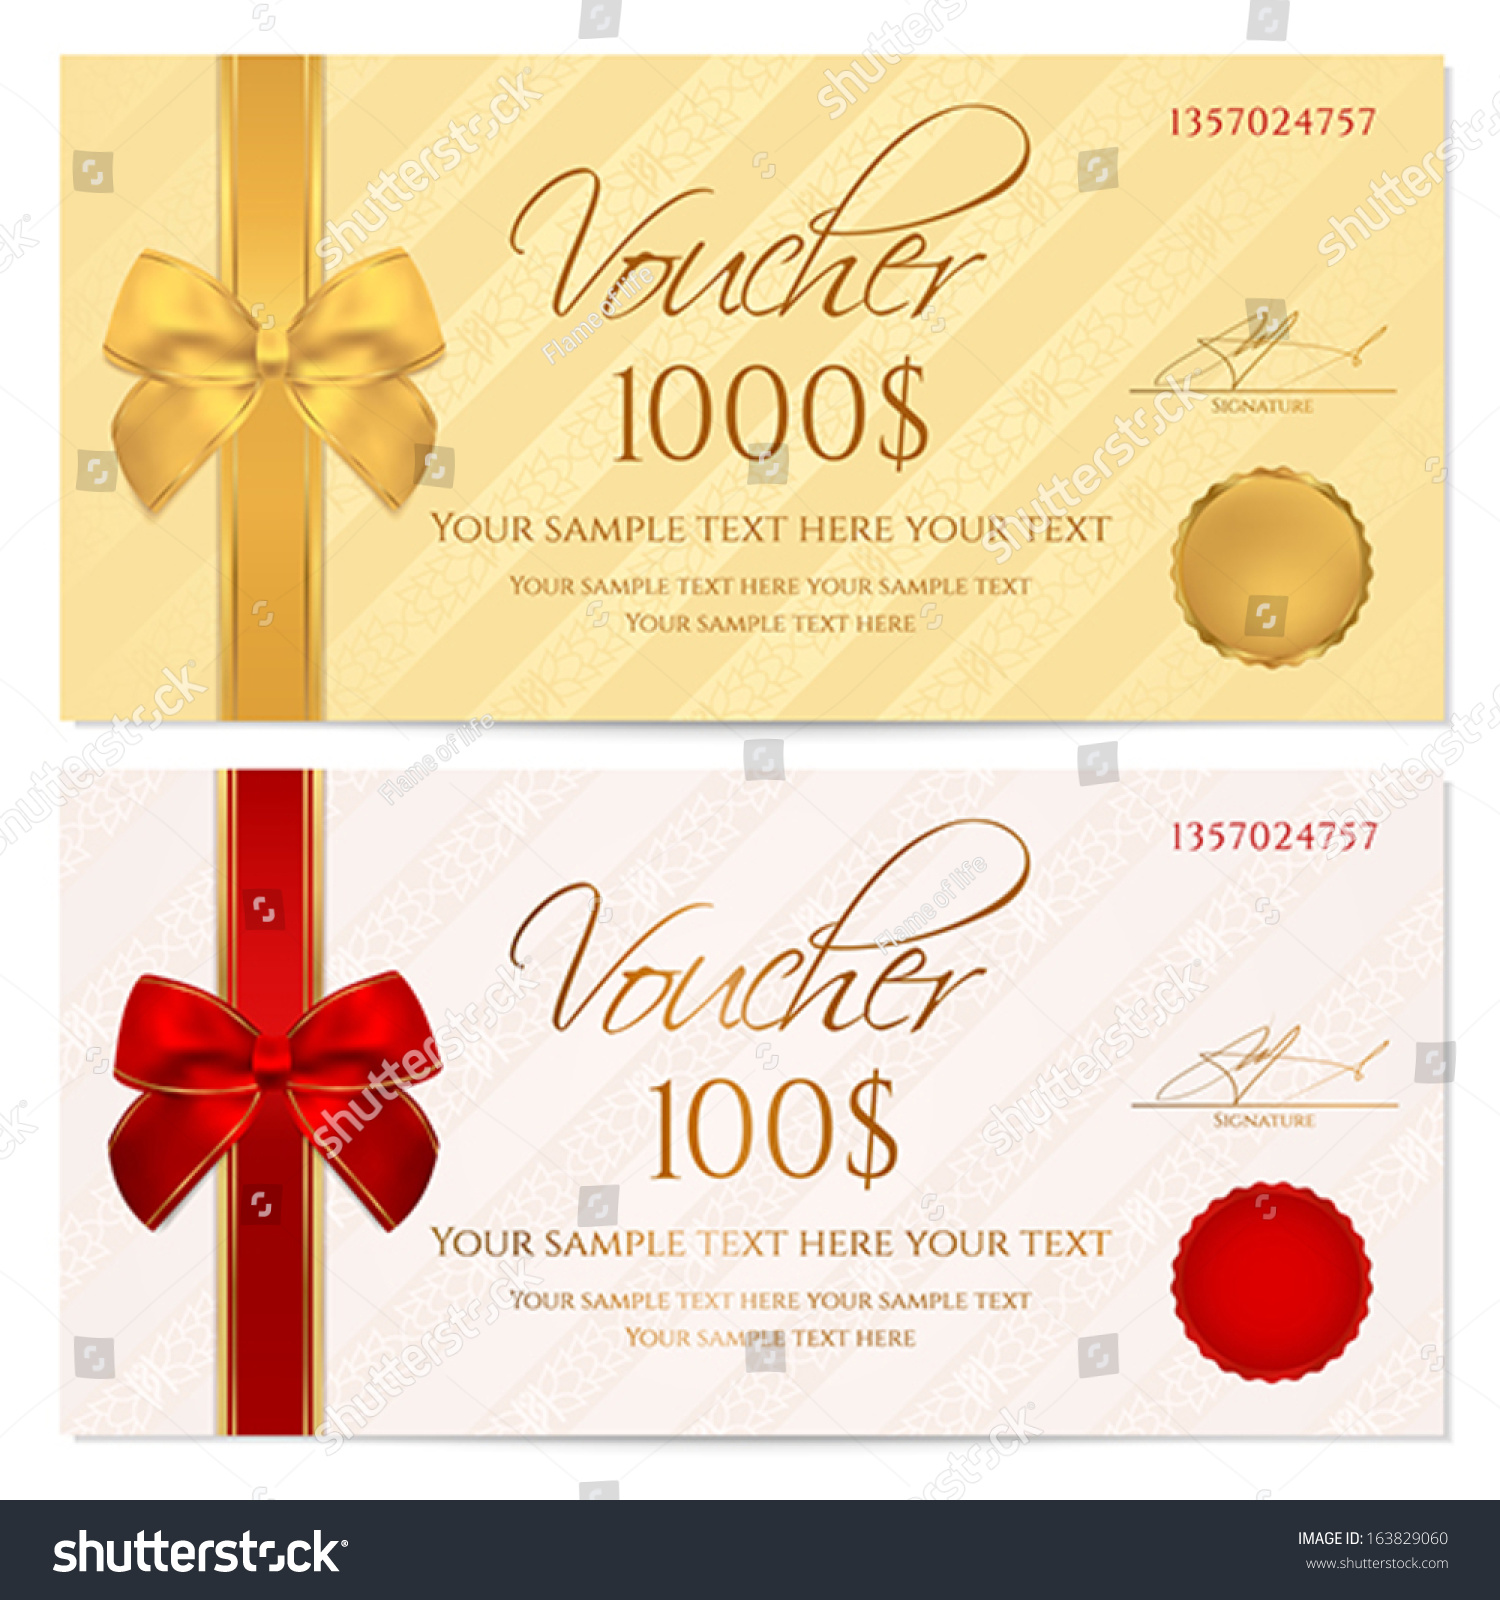 Royalty free voucher gift certificate coupon 163829060 for Cheque voucher template